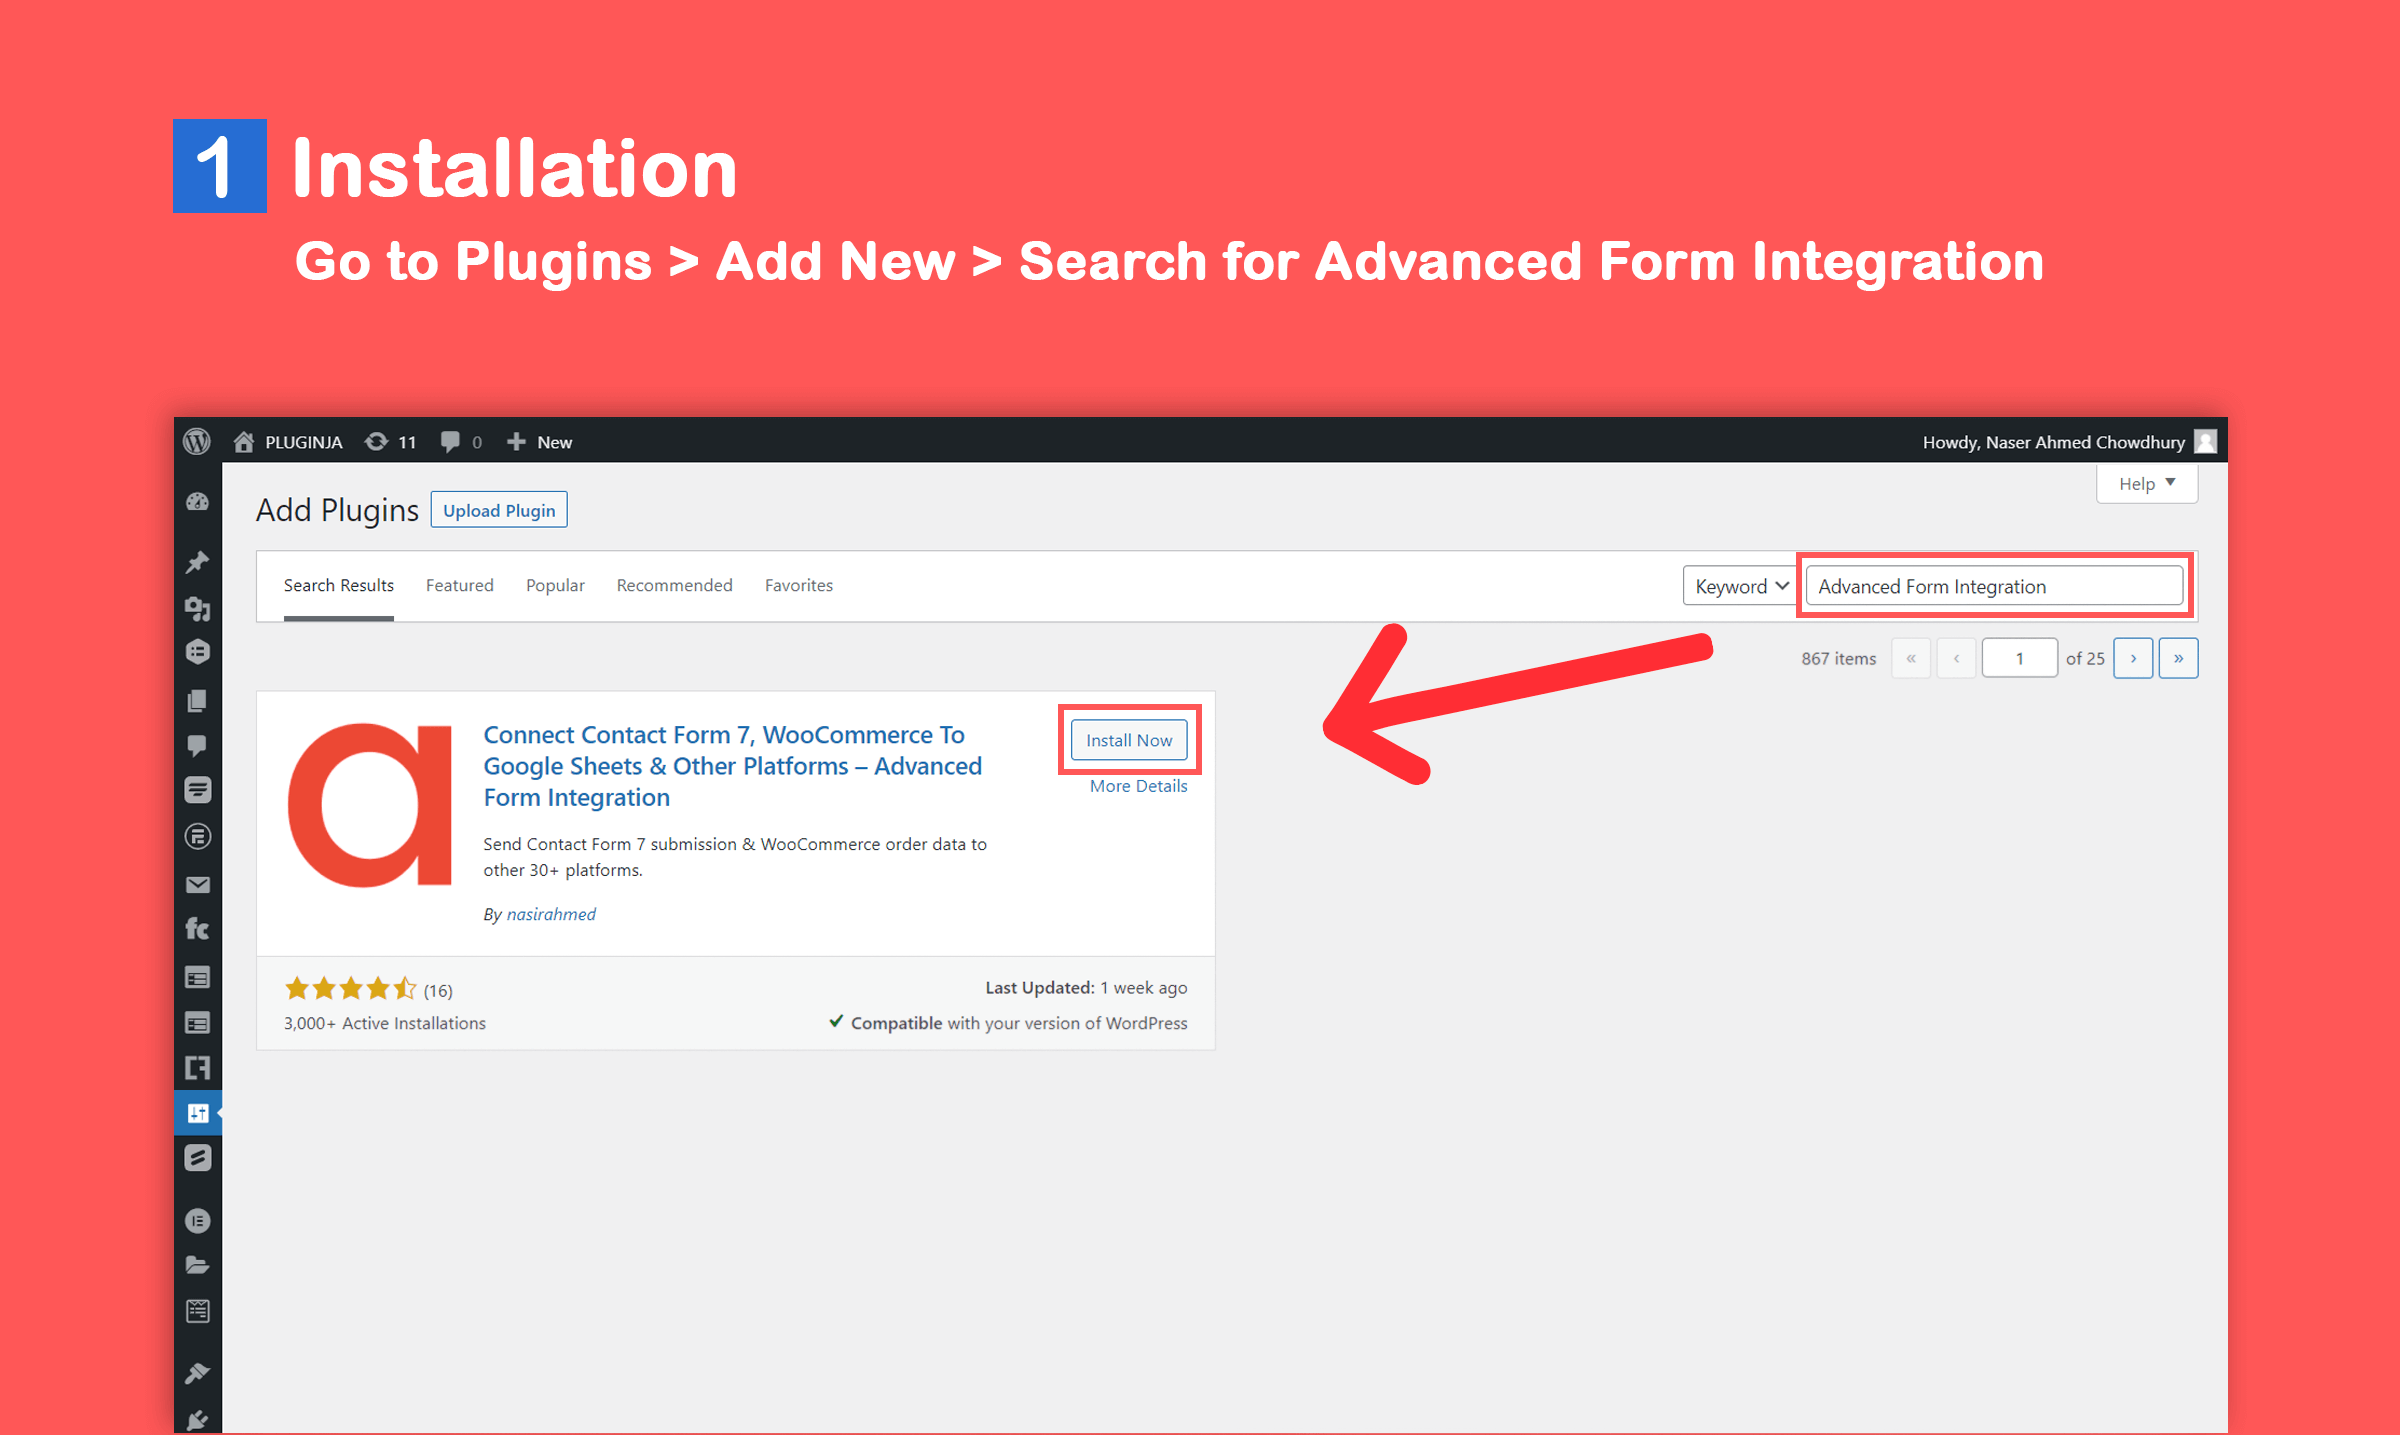 Connect Contact Form 7, WooCommerce To Google Sheets & Other Platforms  – Advanced Form Integration